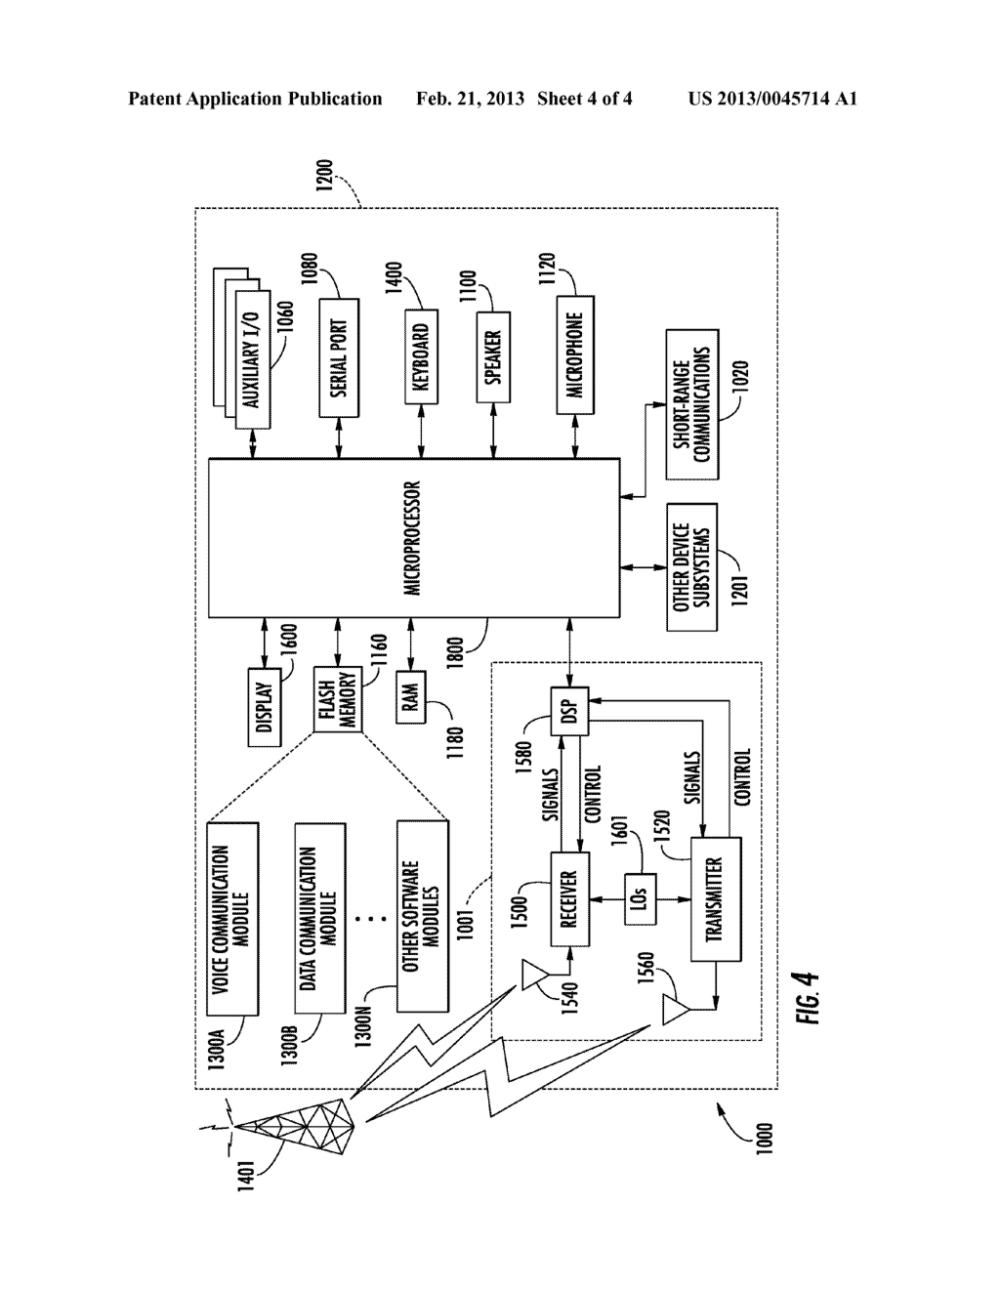 medium resolution of portable wireless communications device including pickpocket notification and related methods diagram schematic and image 05